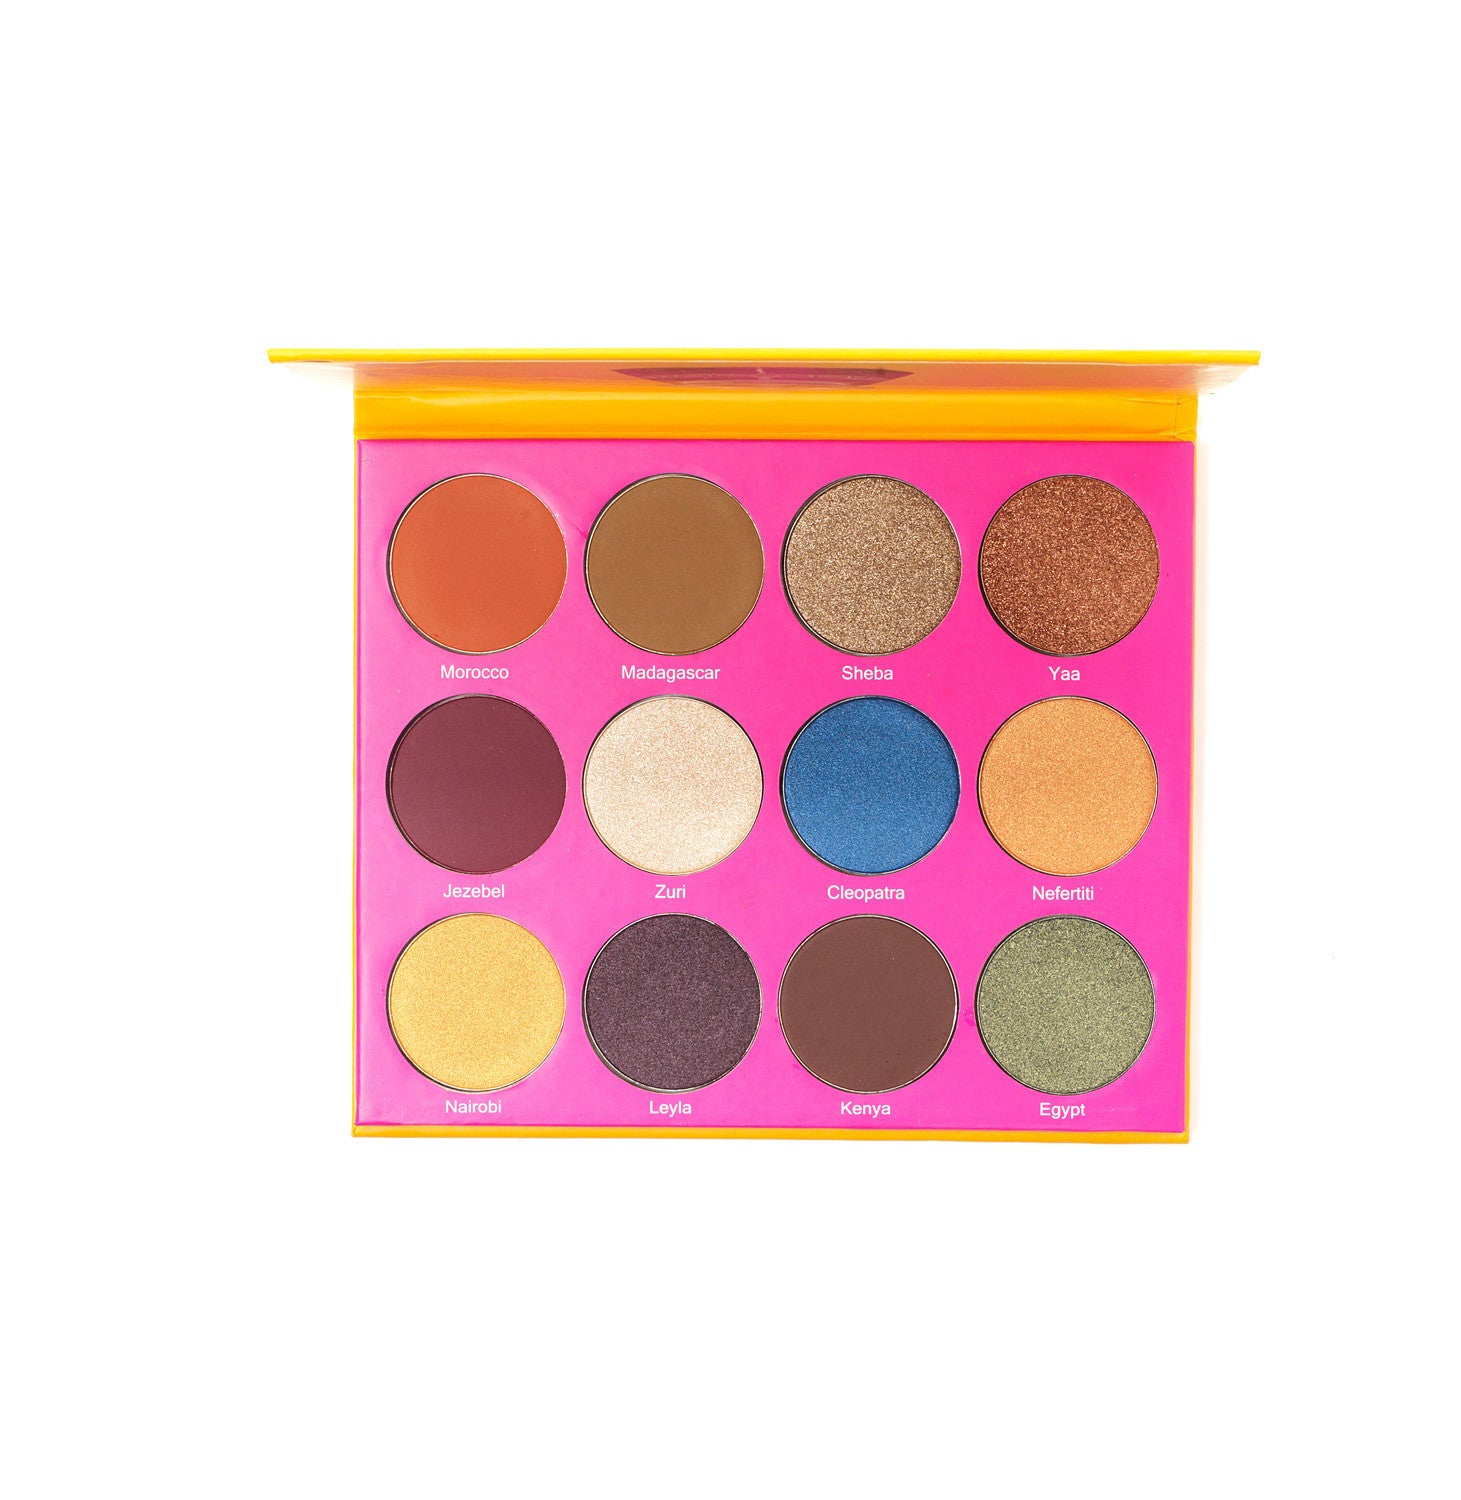 Palettes - The Nubian 2nd Edition Palette